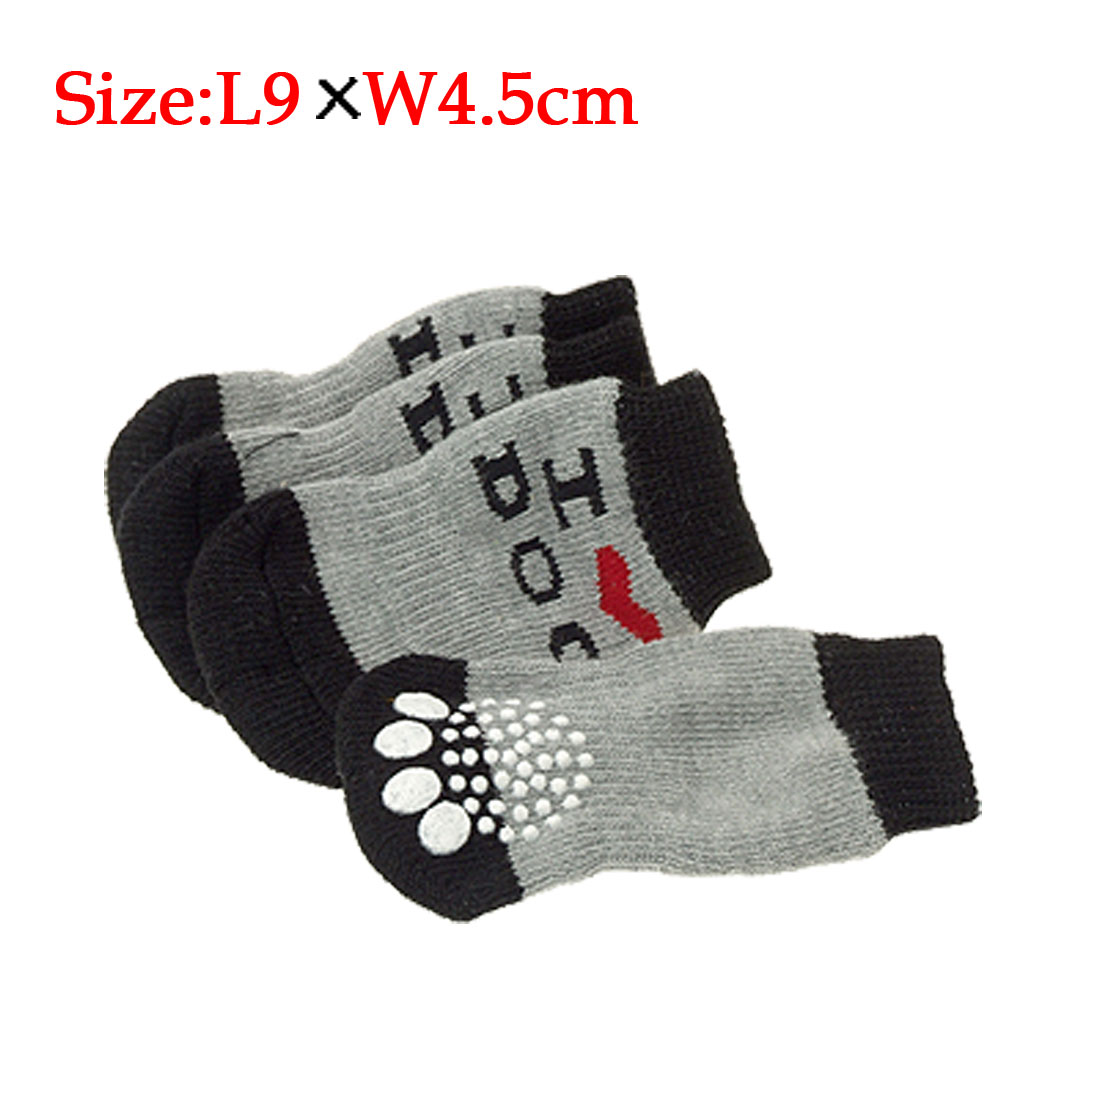 I Love Dog Knitted Nonskid Pet's Socks Gray Black